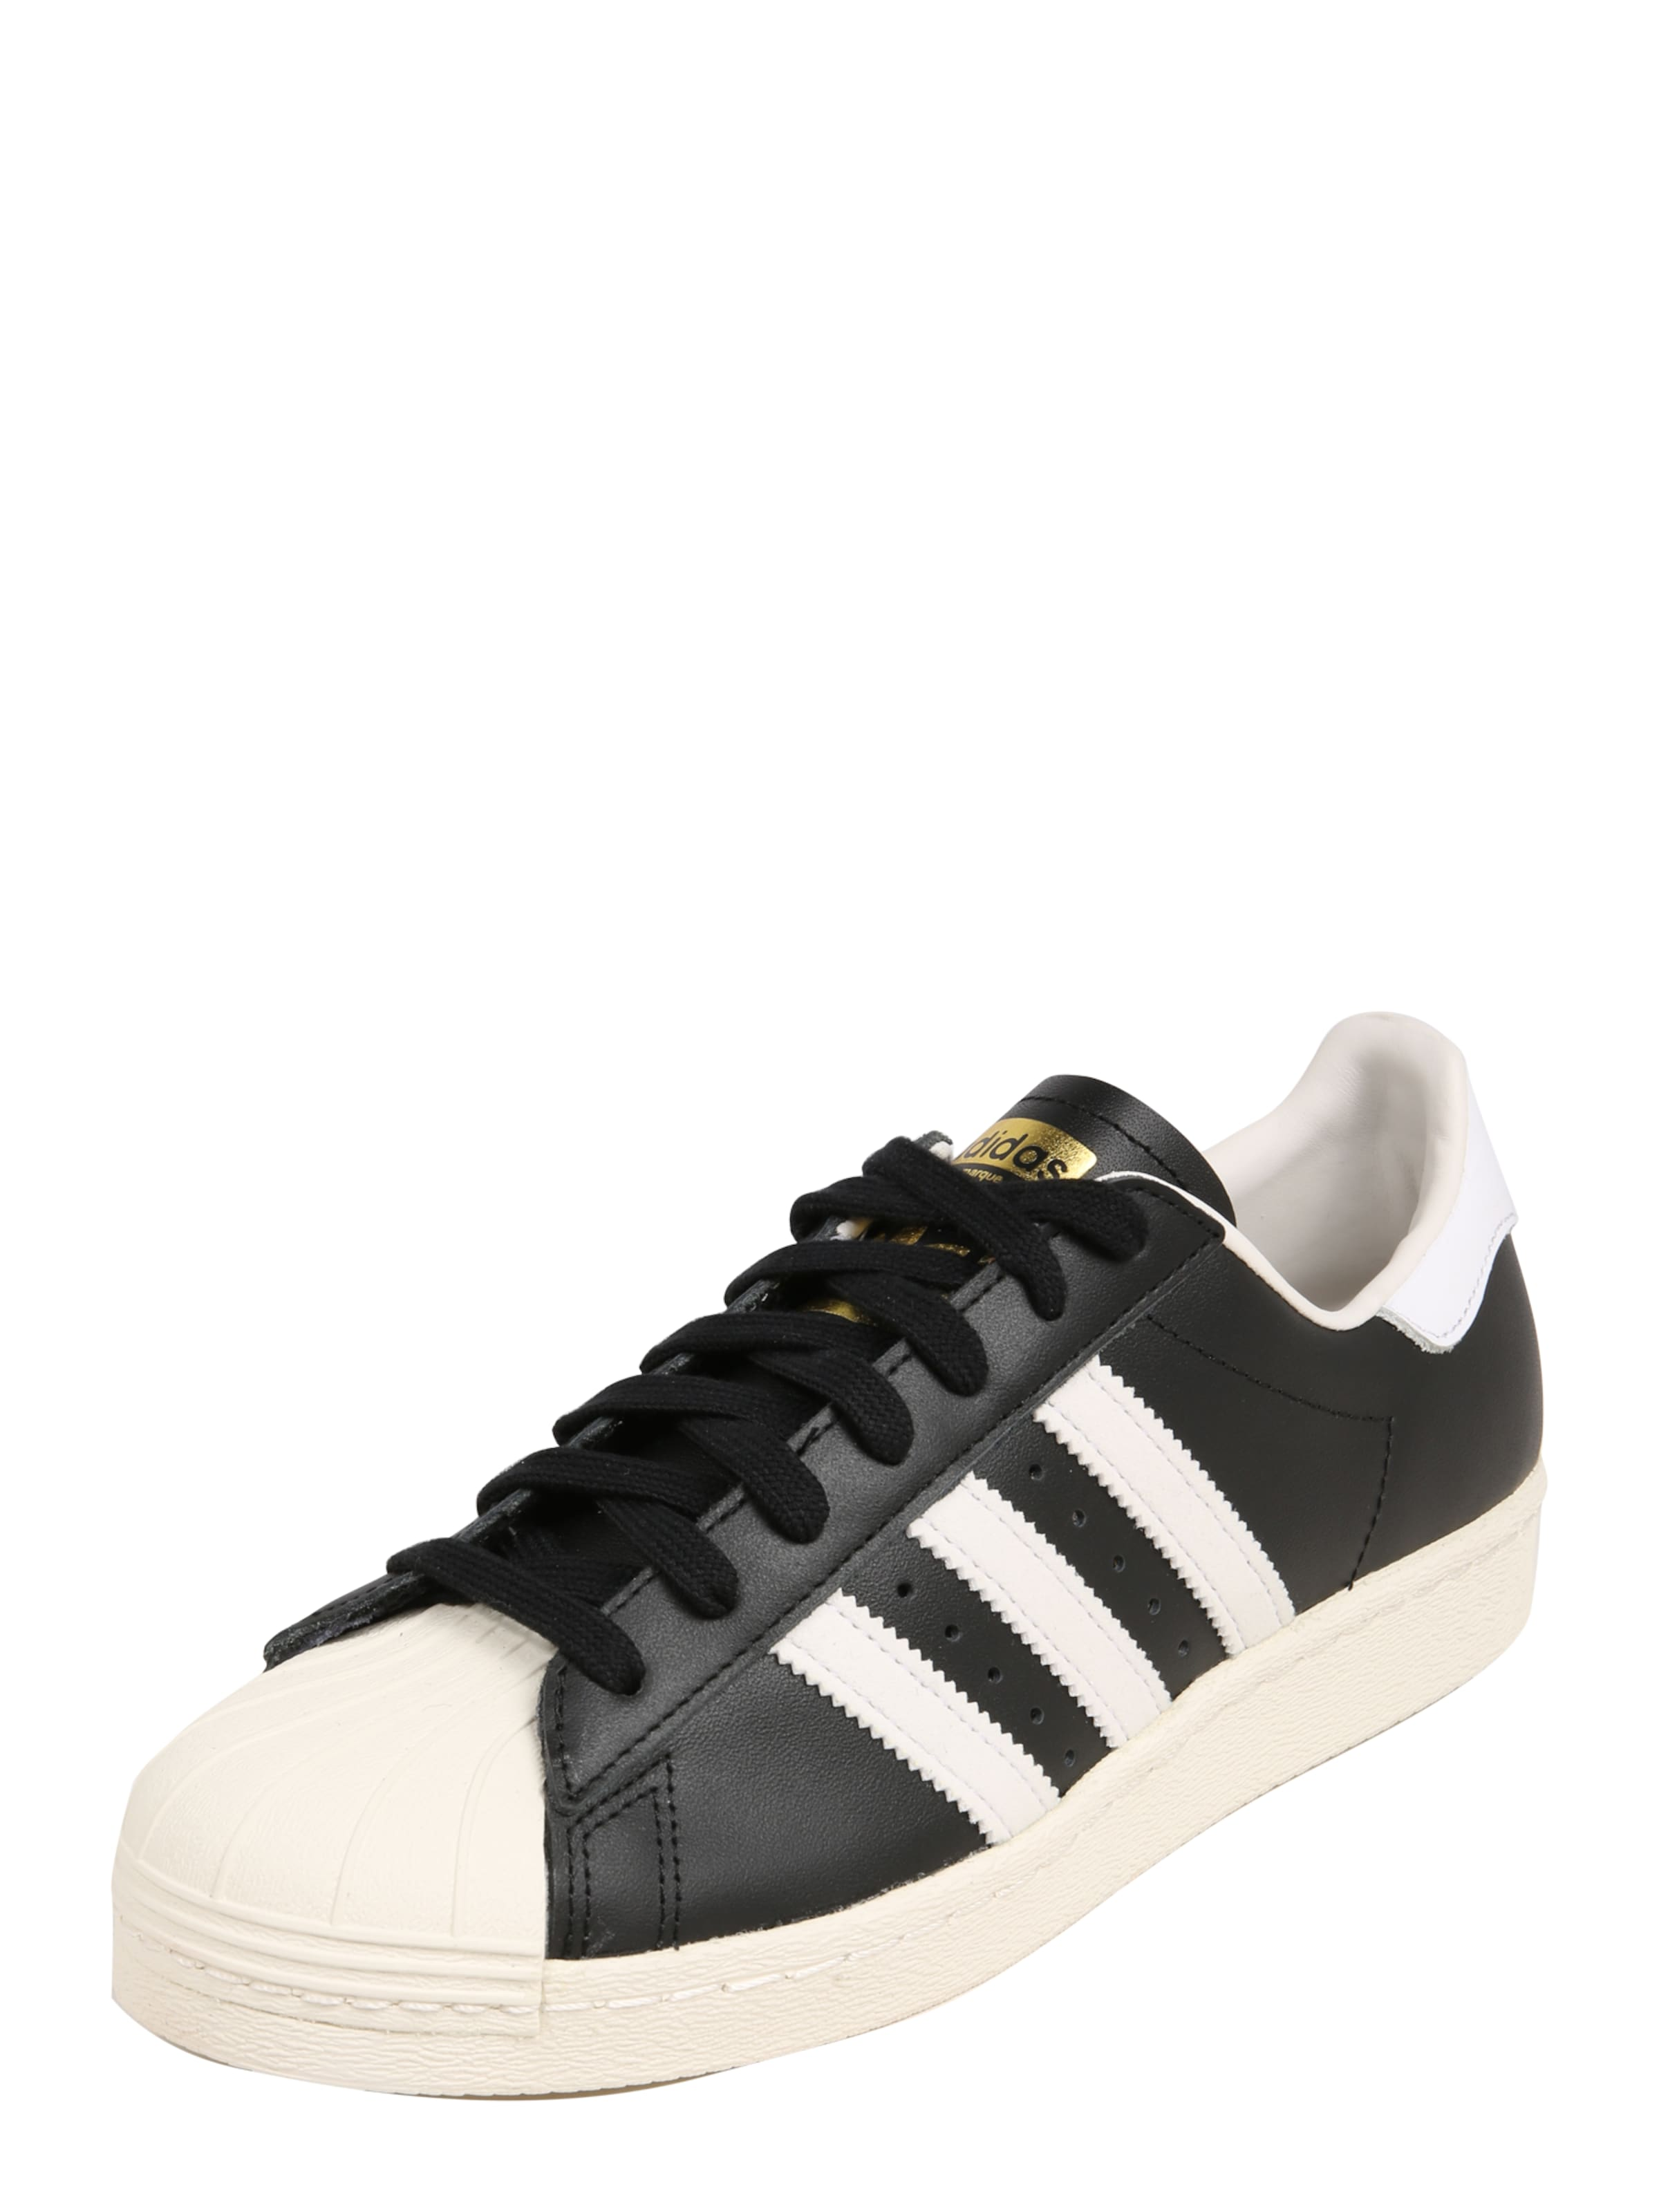 'superstar Sneaker In SchwarzWeiß 80s' Adidas Originals wNOPv80myn